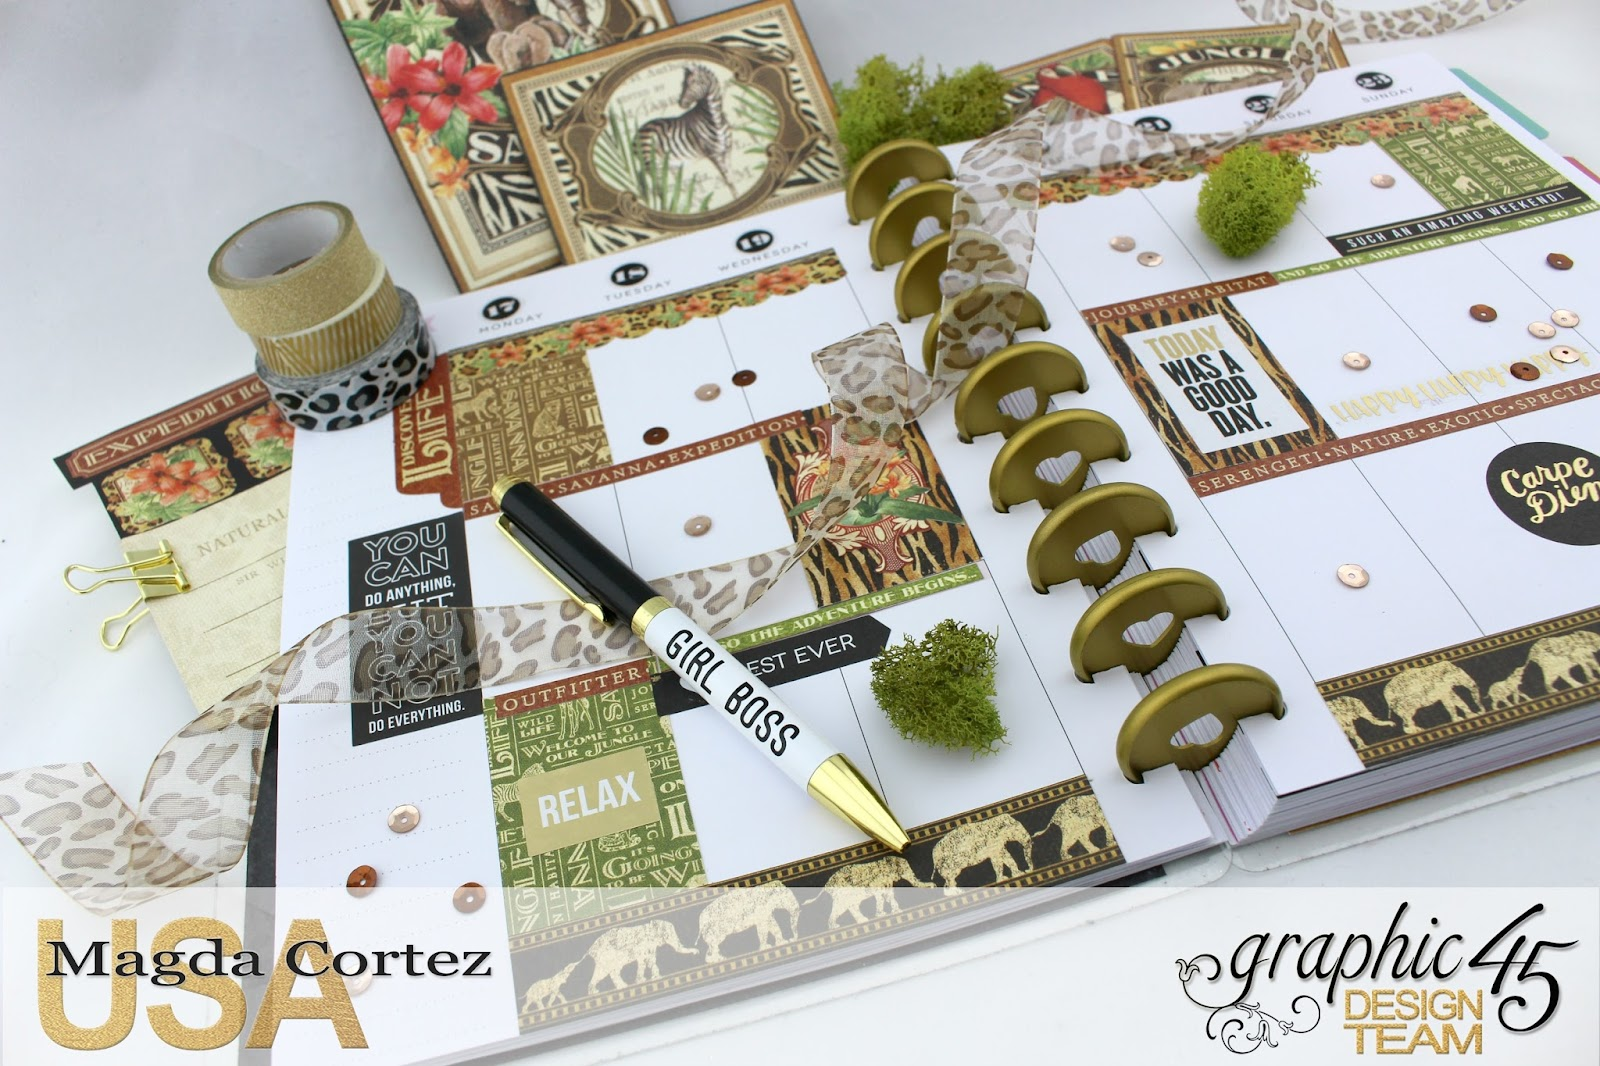 My JULY G45 Planner,Safari Adventure By Magda Cortez, Product by G45, Photo 16 of 20.jpg